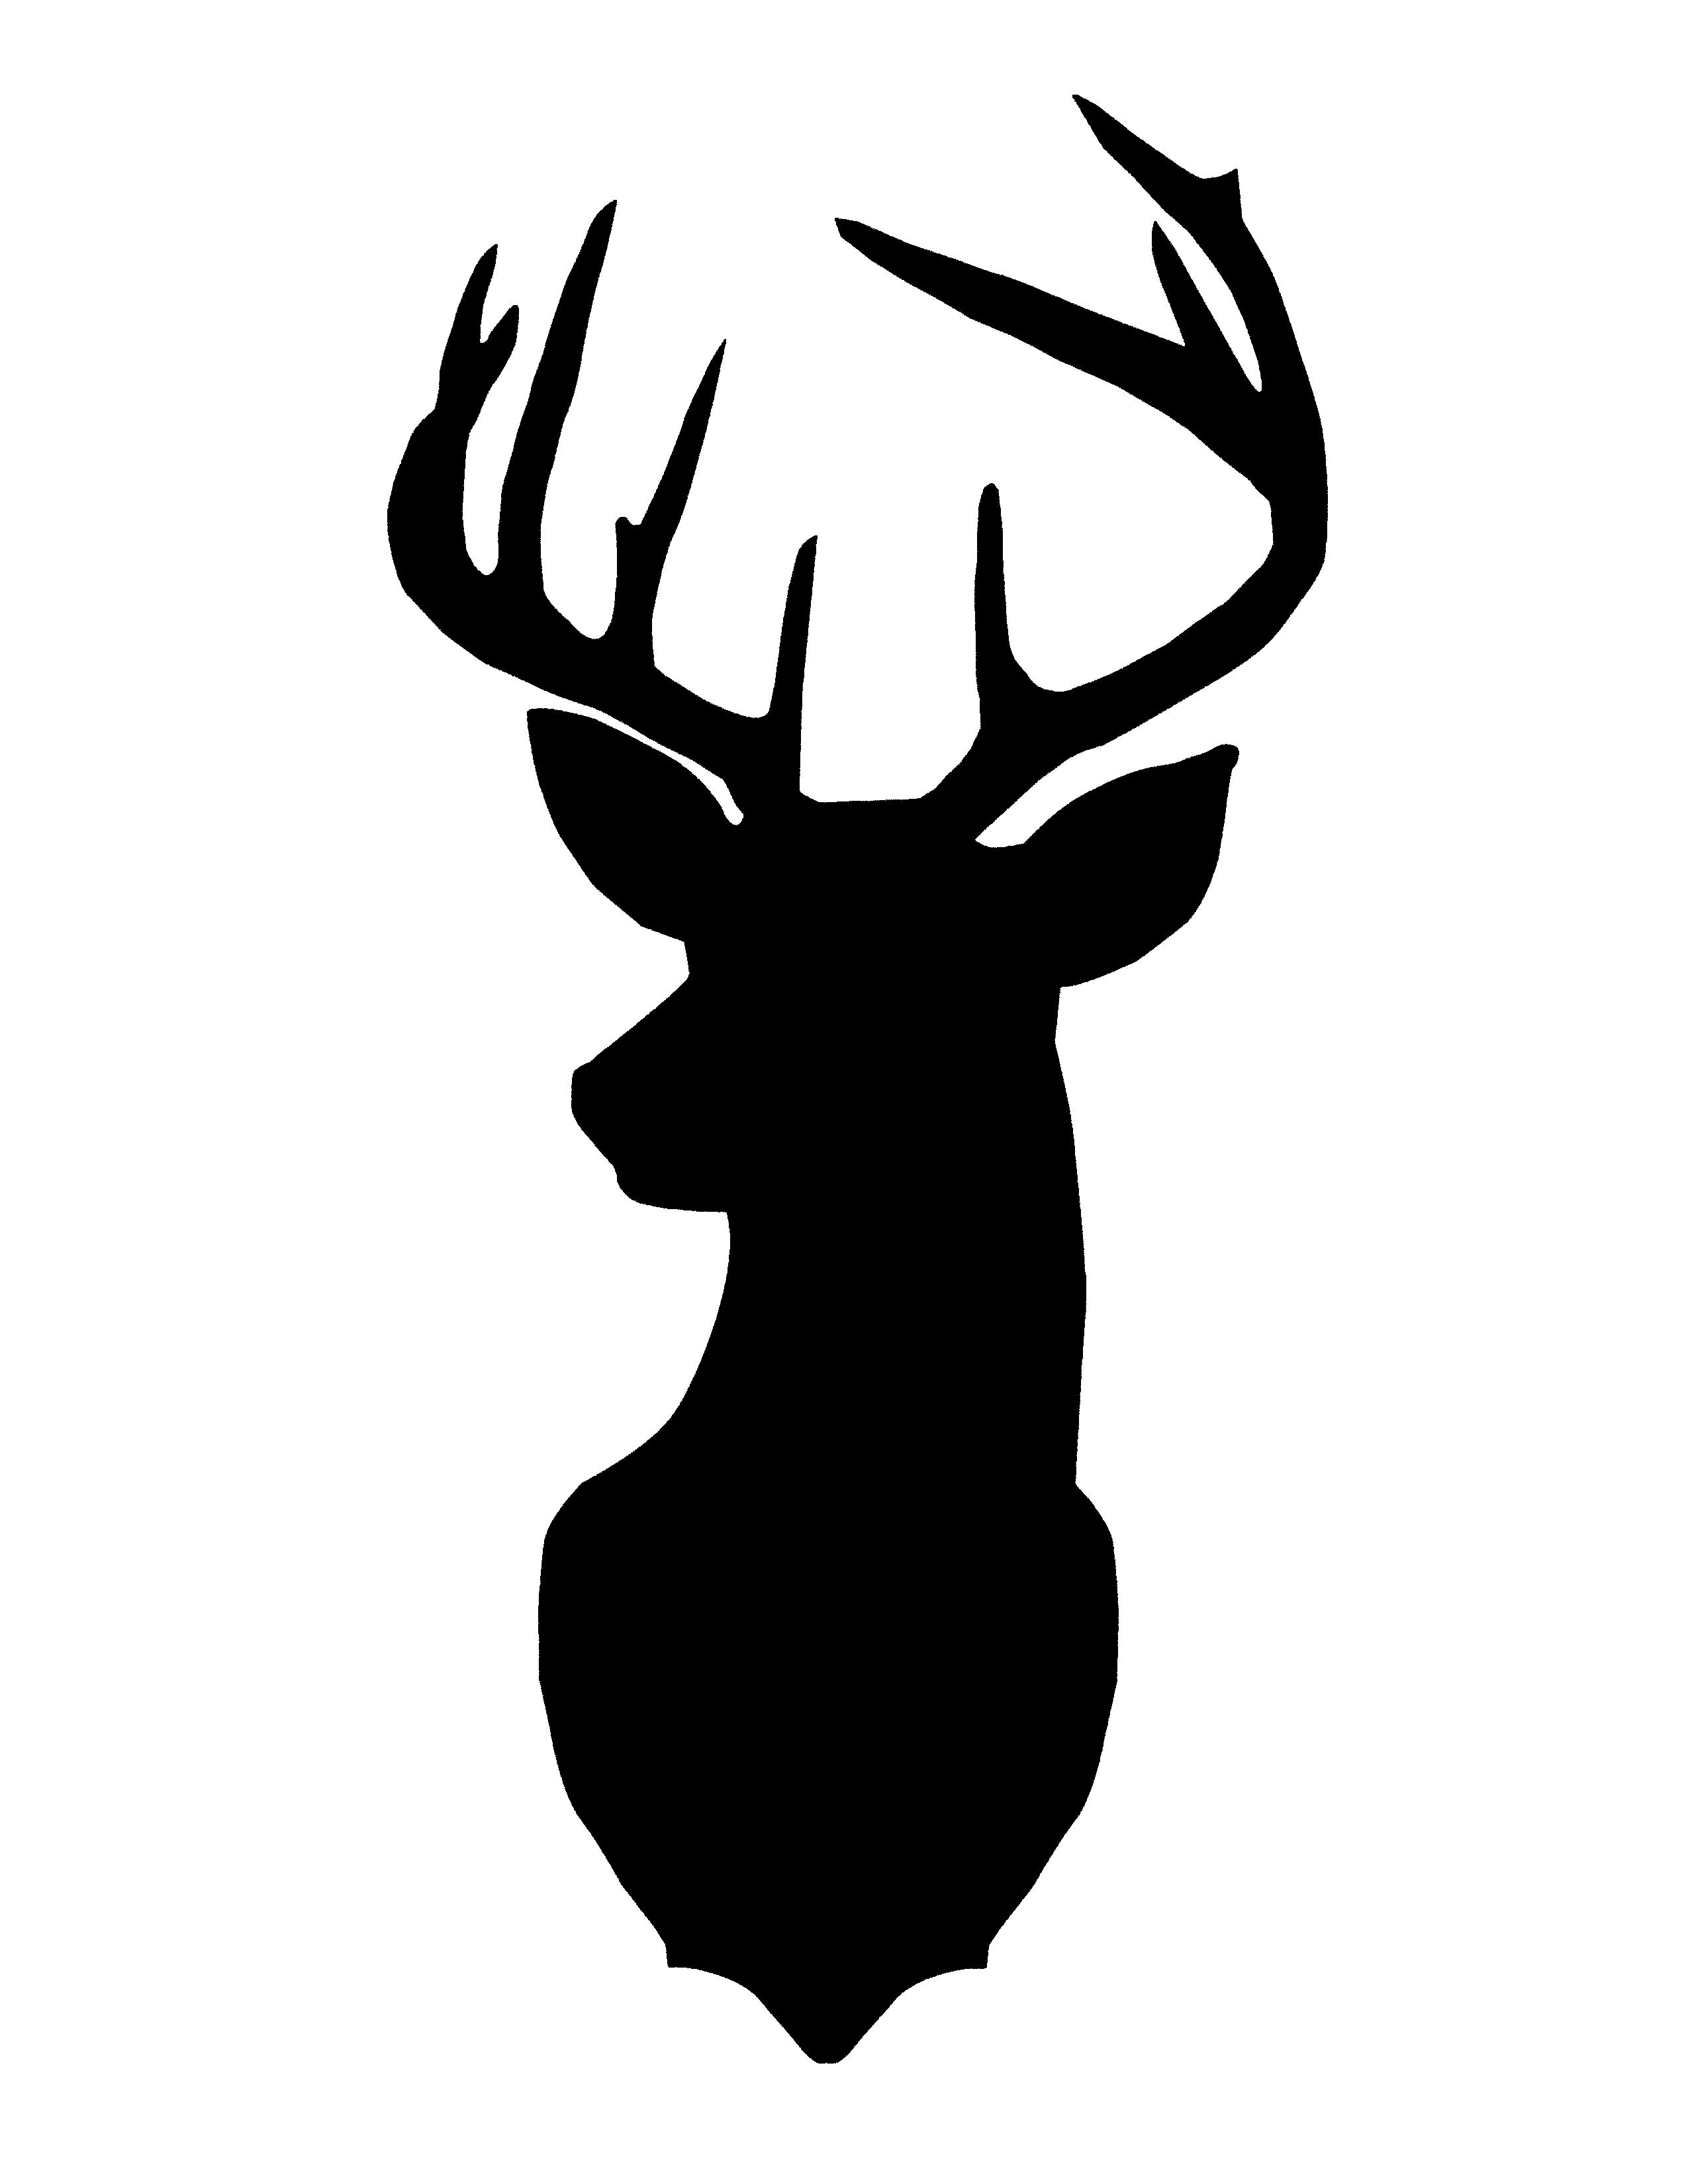 Deer head clipart black and white vector transparent library Deer Head Black And White | Free download best Deer Head Black And ... vector transparent library